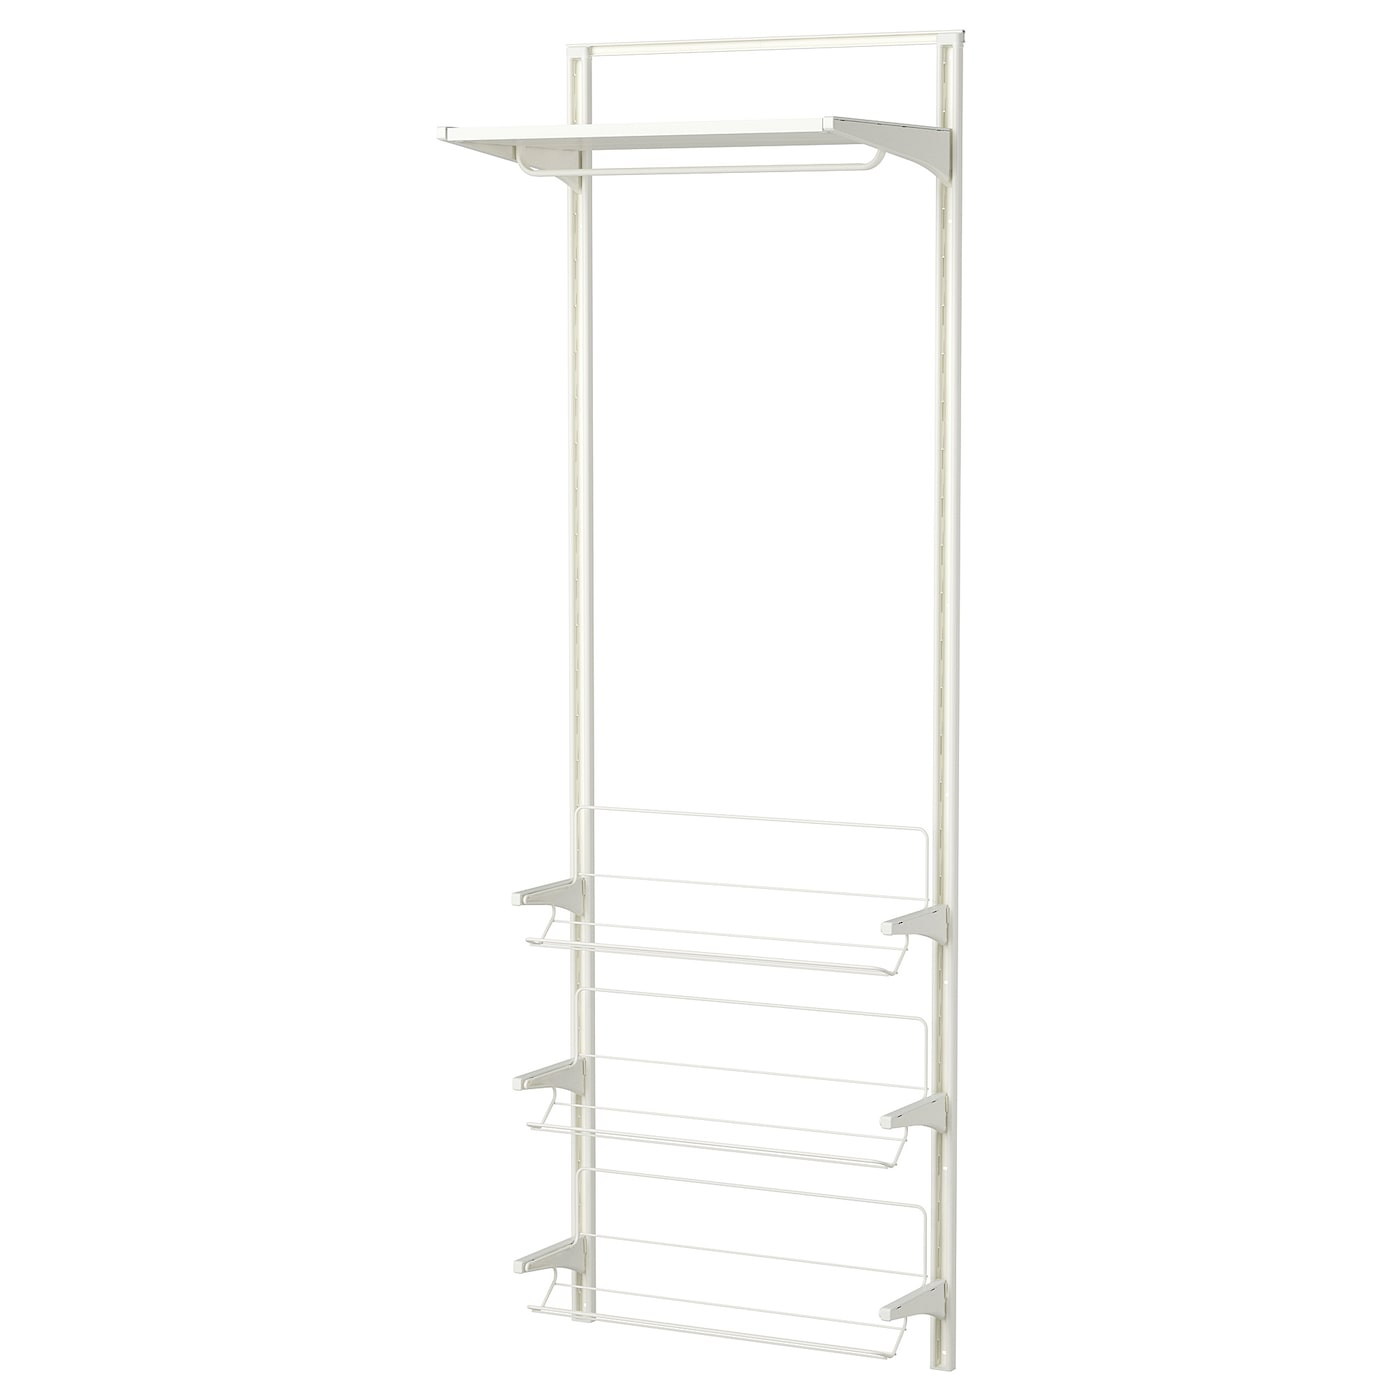 IKEA ALGOT wall upright/shelves/shoe organiser